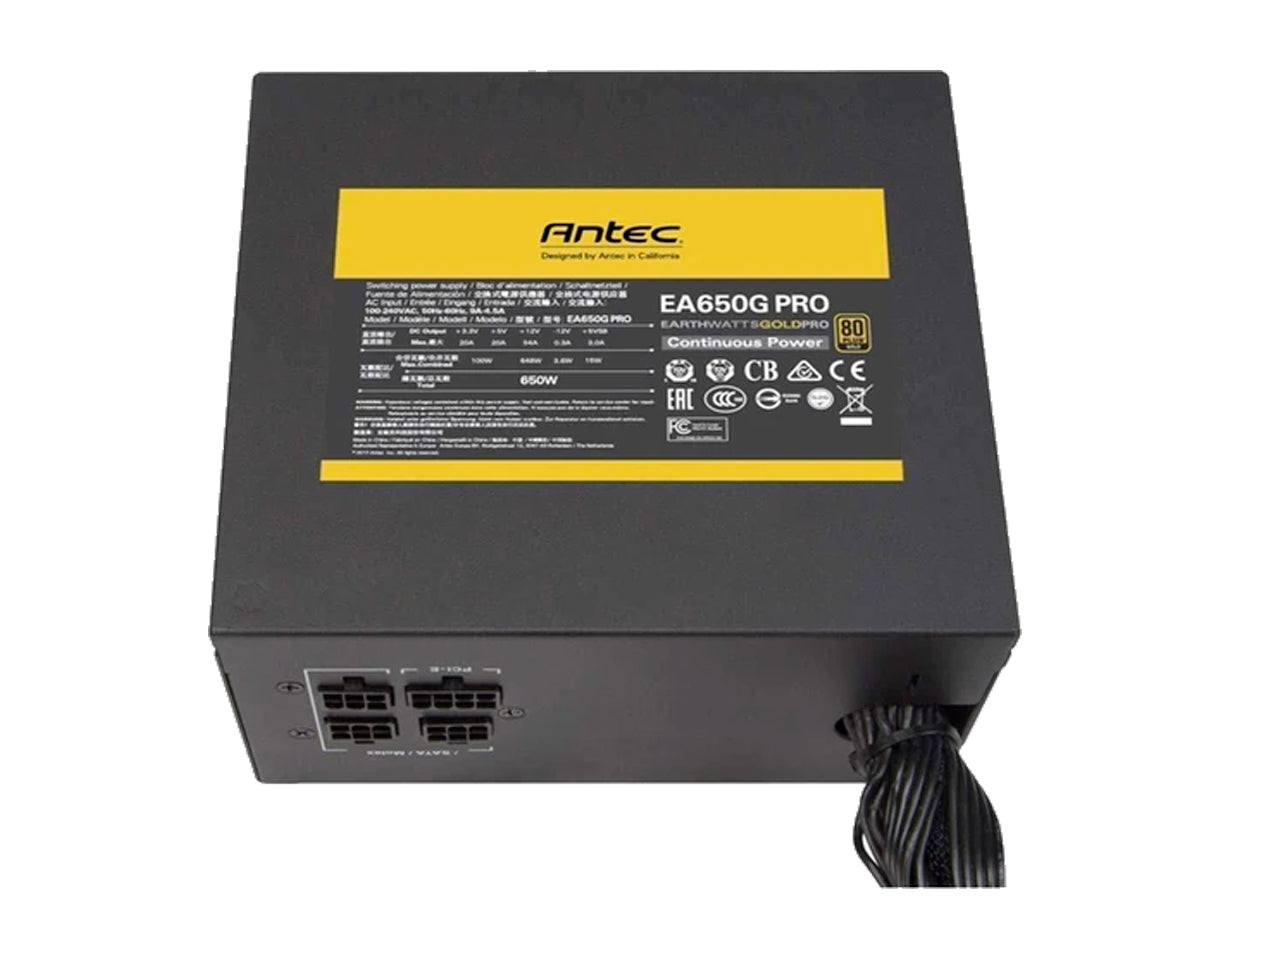 Antec EA650G PRO Earthwatts Gold Pro 650W Hybrid Modular Power Supply